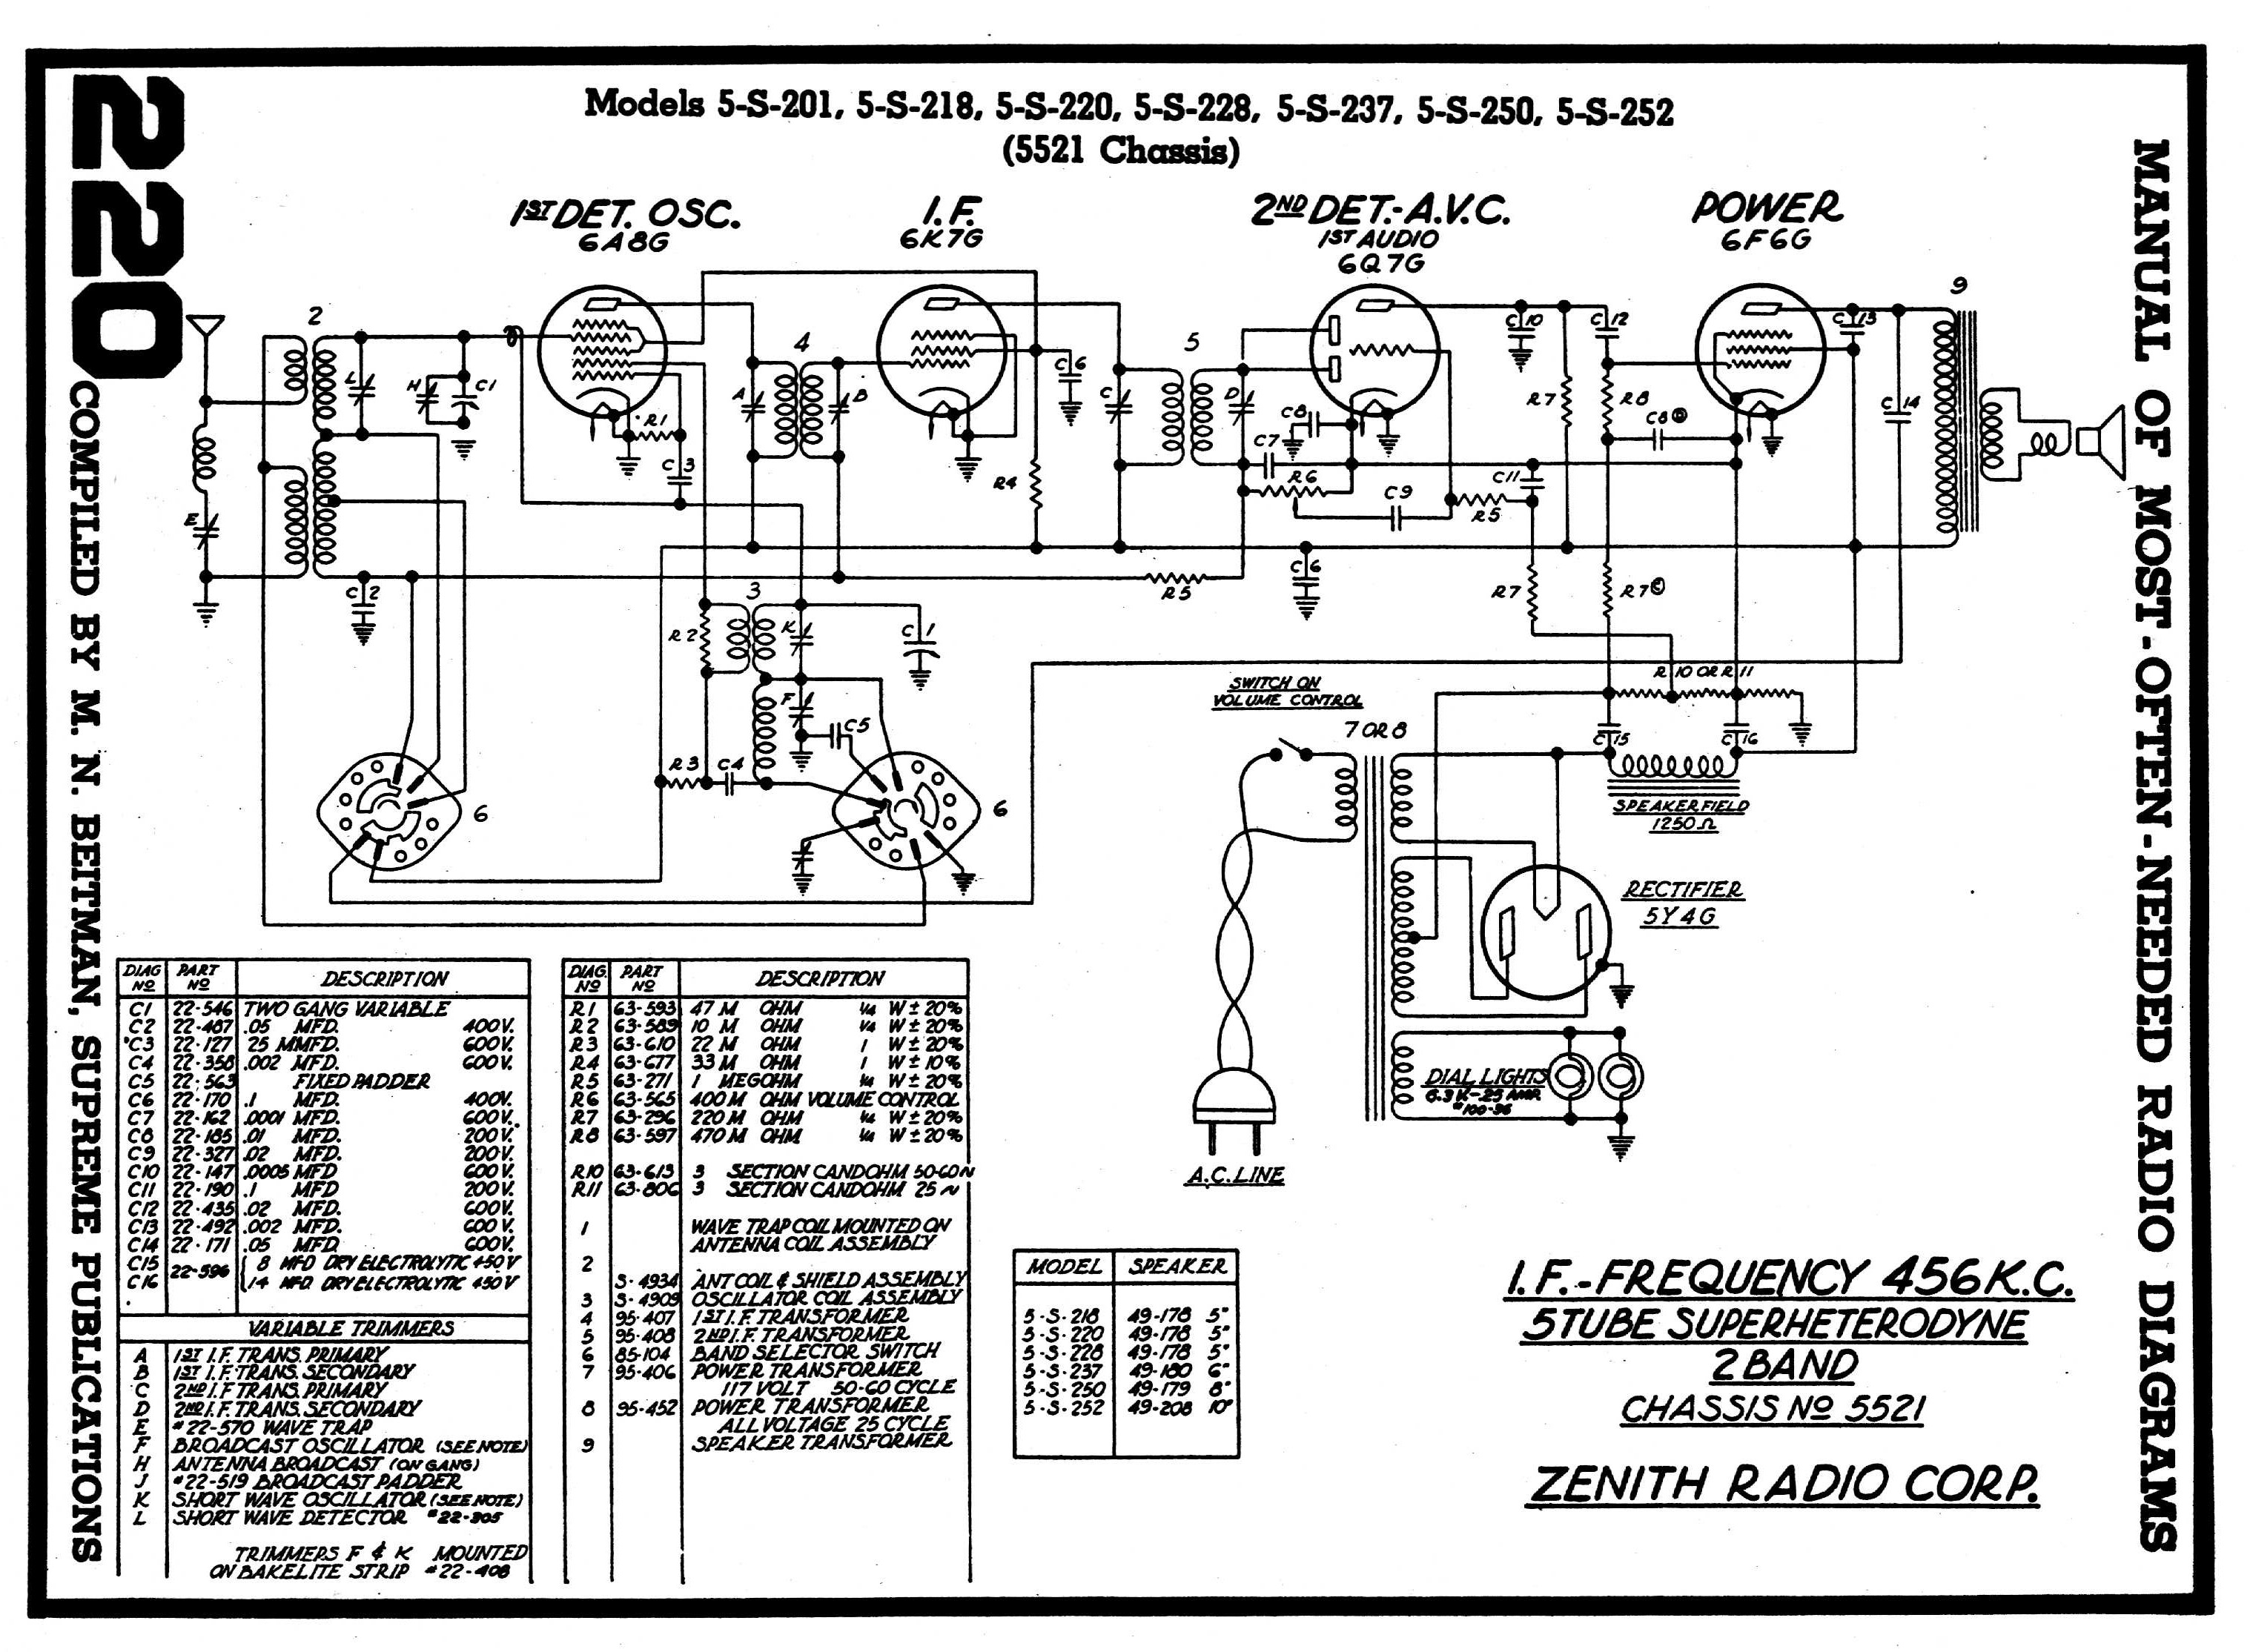 Diagrams And Service Data For Zenith 5 S 228